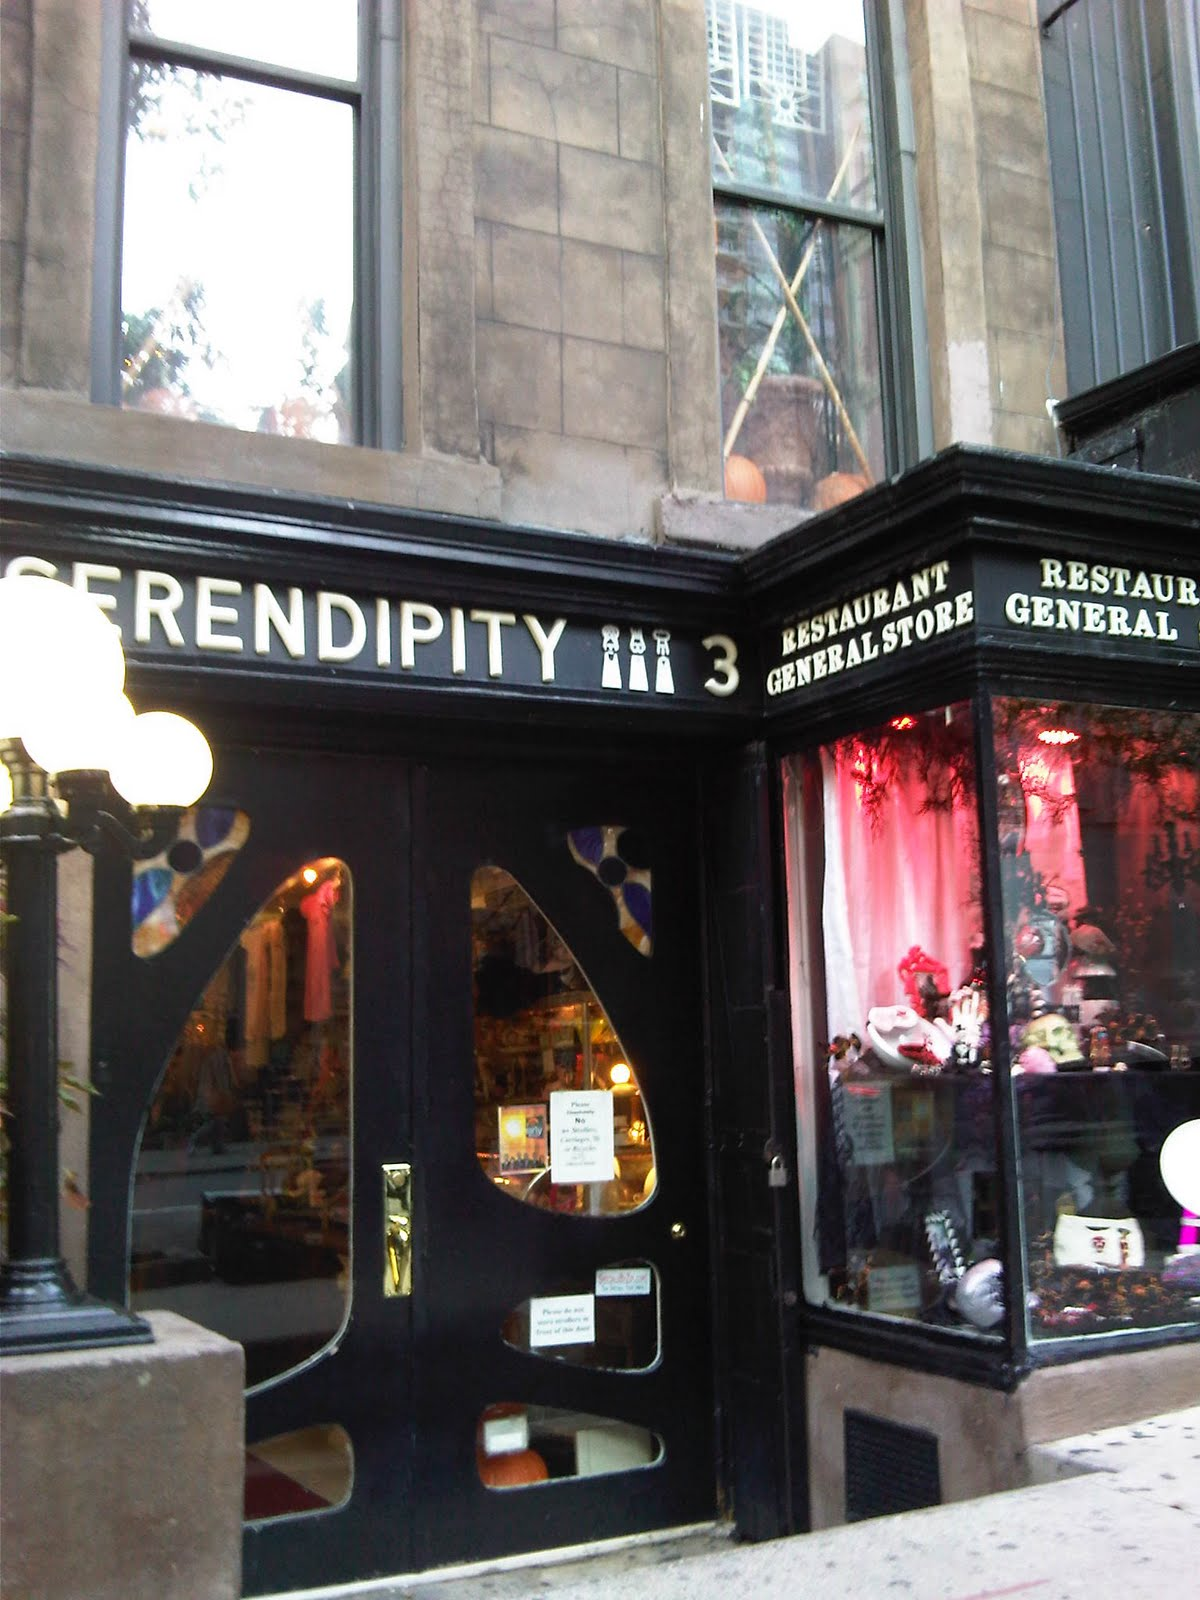 Food Review: Serendipity 3, New York